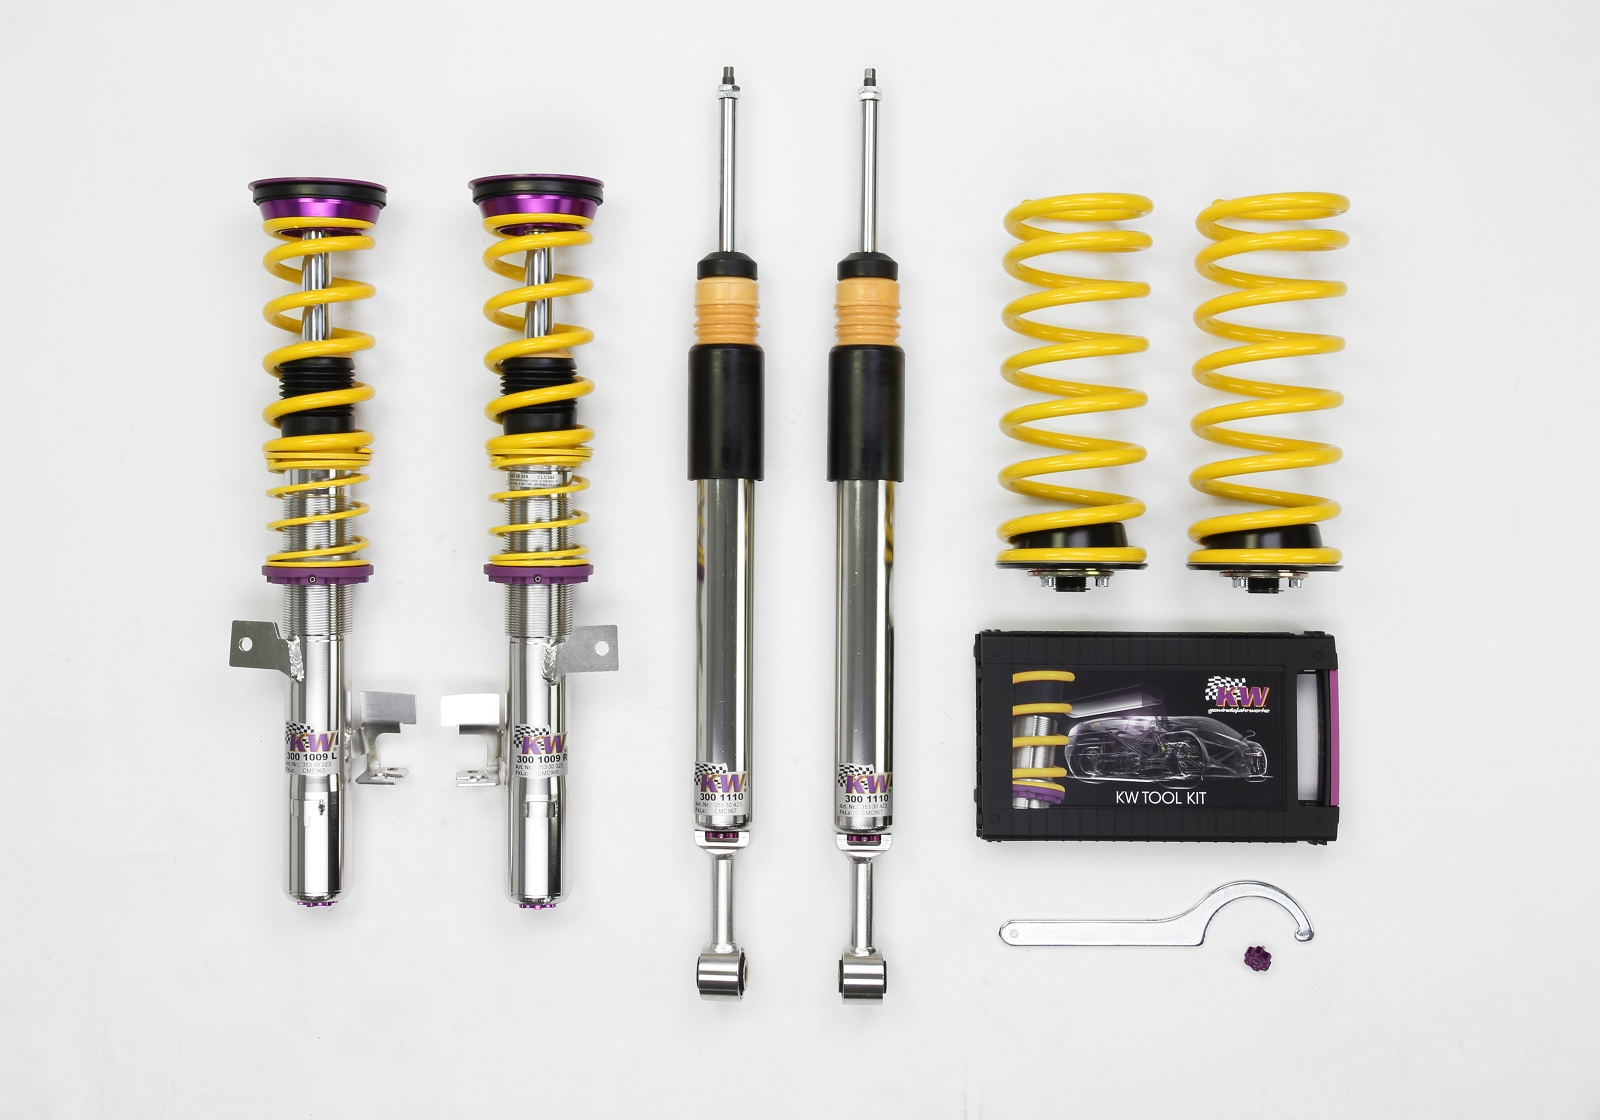 KW Variant 3 coilovers for 2013 Ford Focus ST